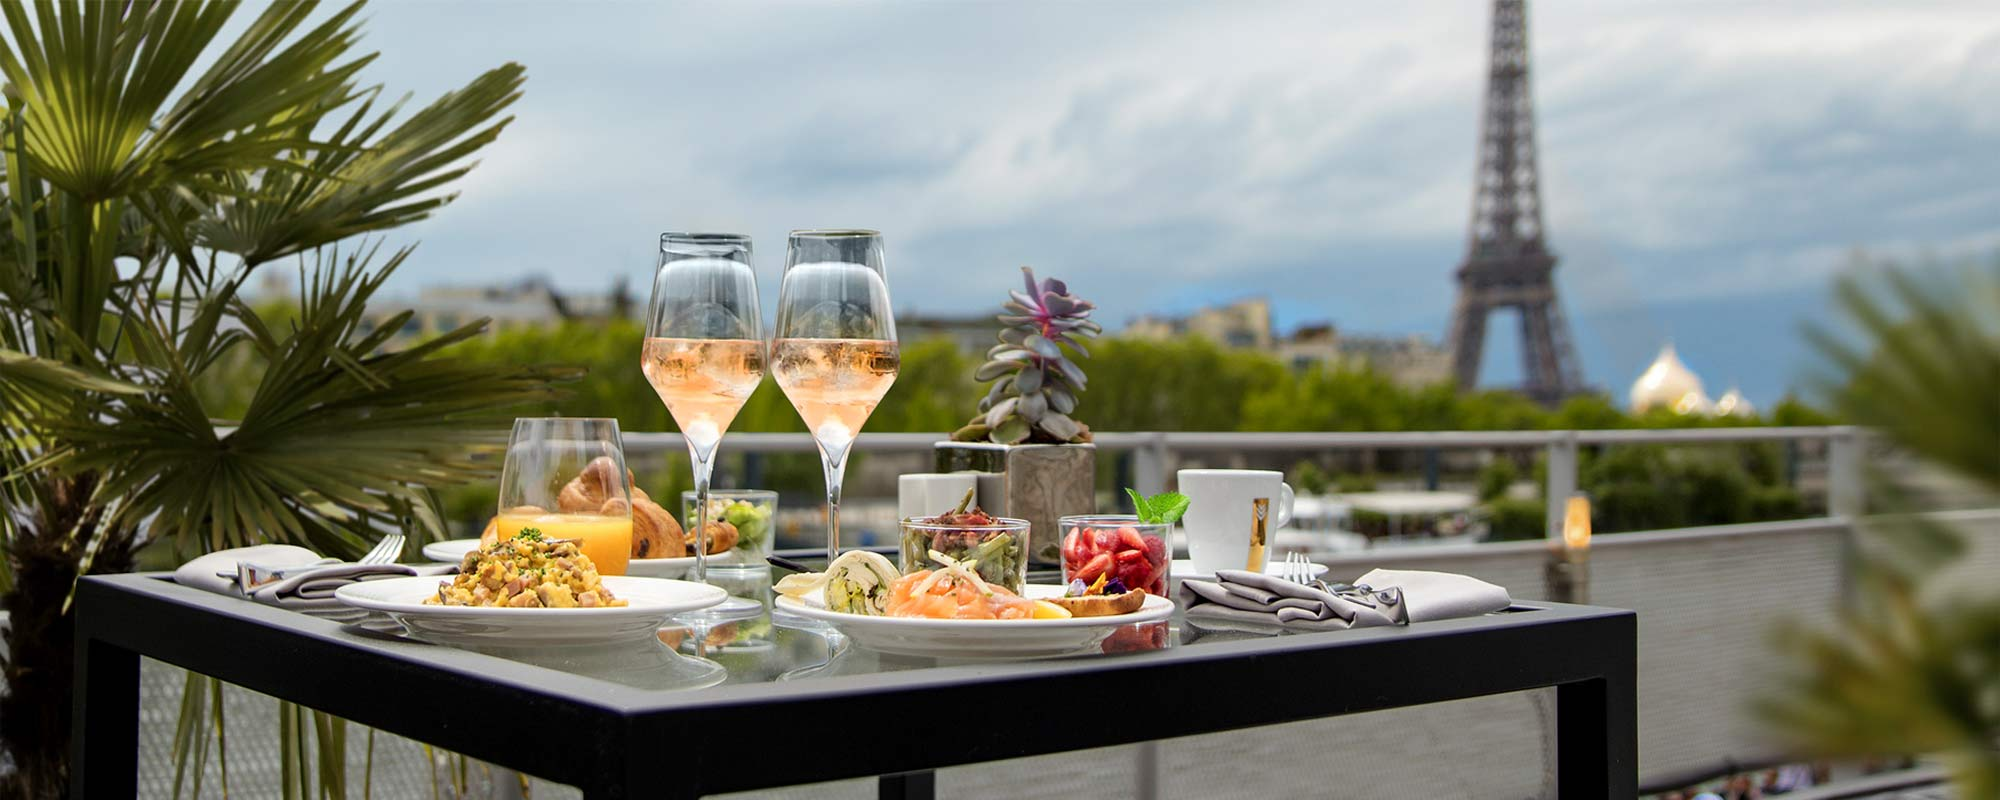 Terrasse - Rooftop - Le Brunch du Restaurant le Club